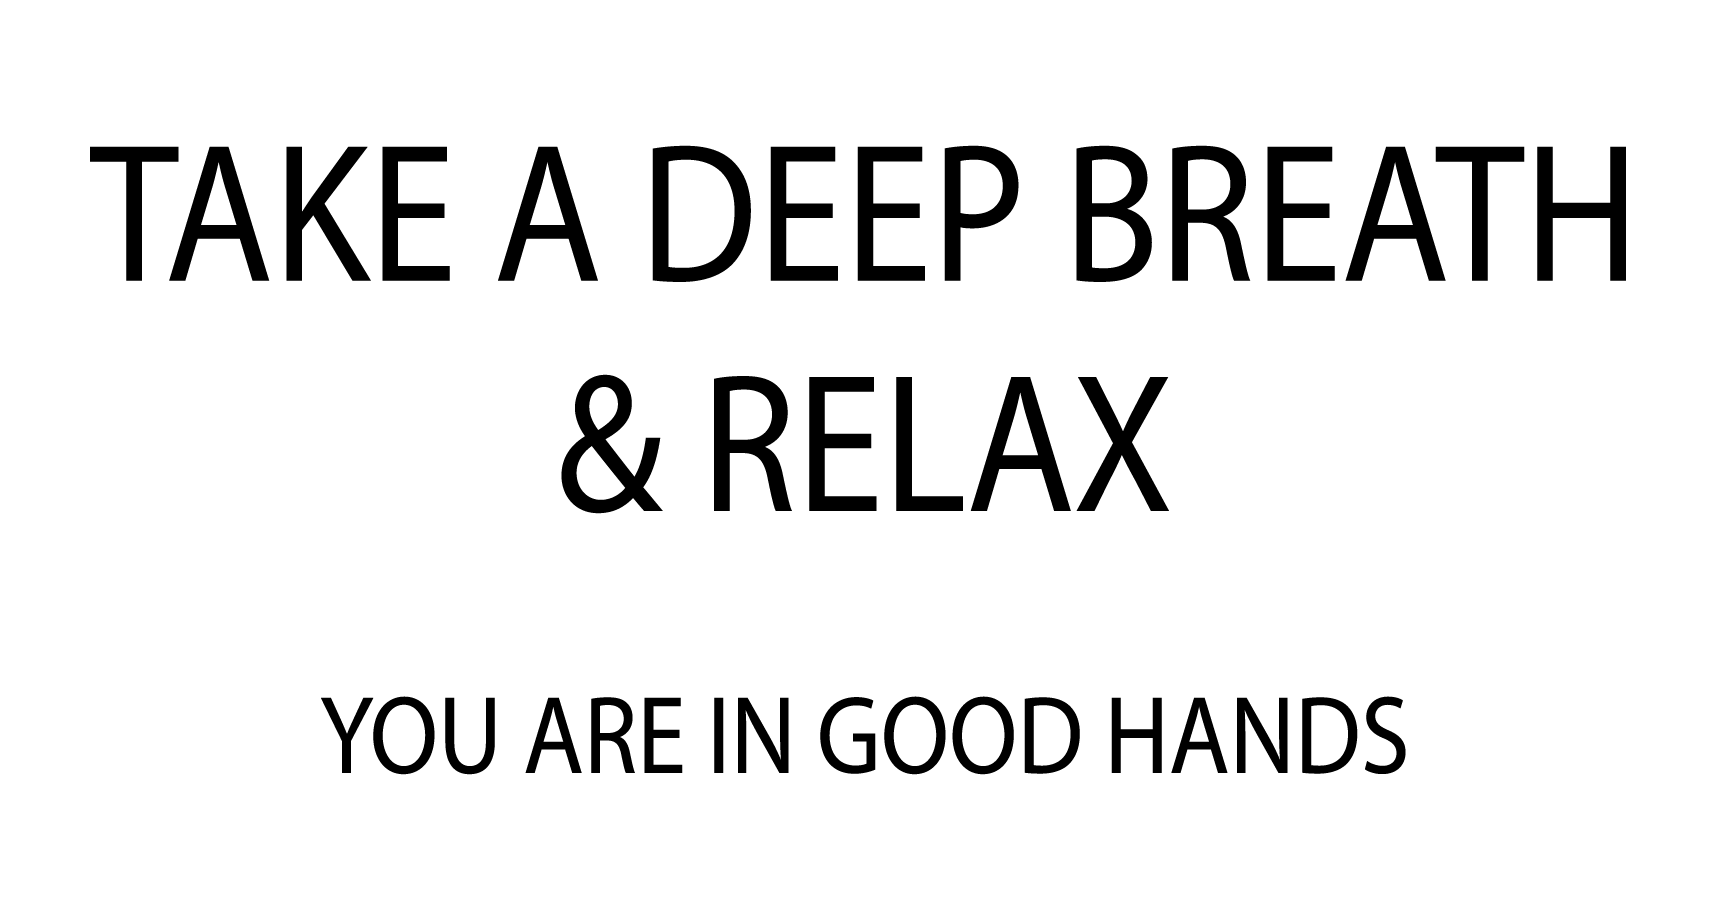 Take a deep breath and relax